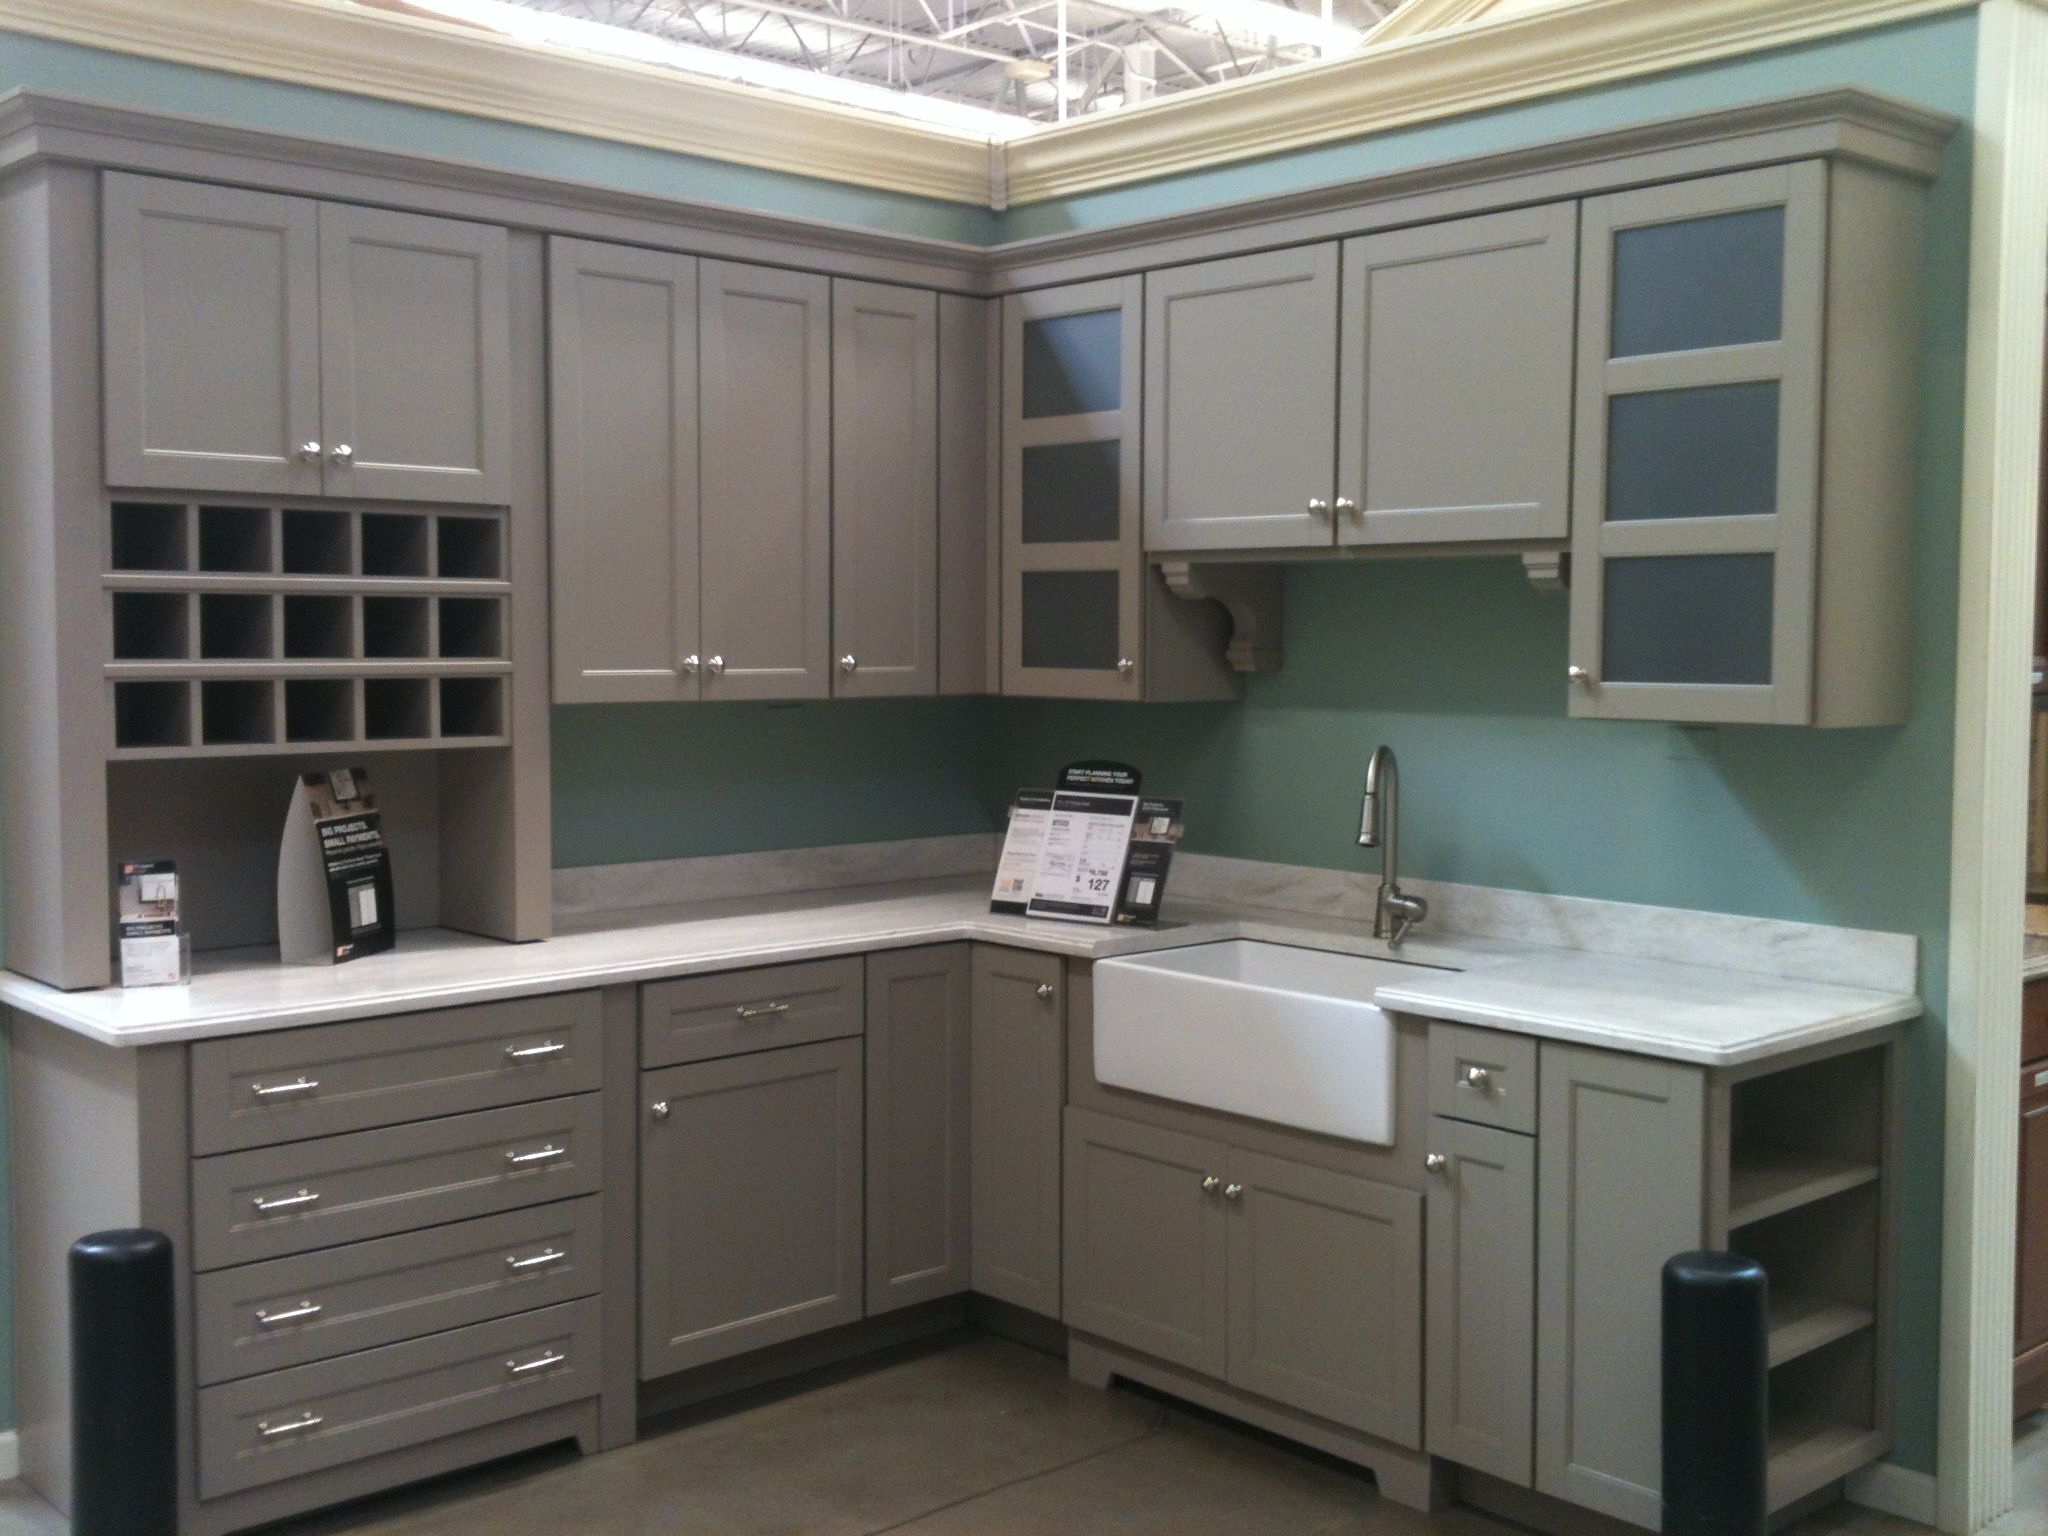 Martha Stewart Cabinets From Home Depot Like The Shelves On The End Ideas For Mom 39 S House